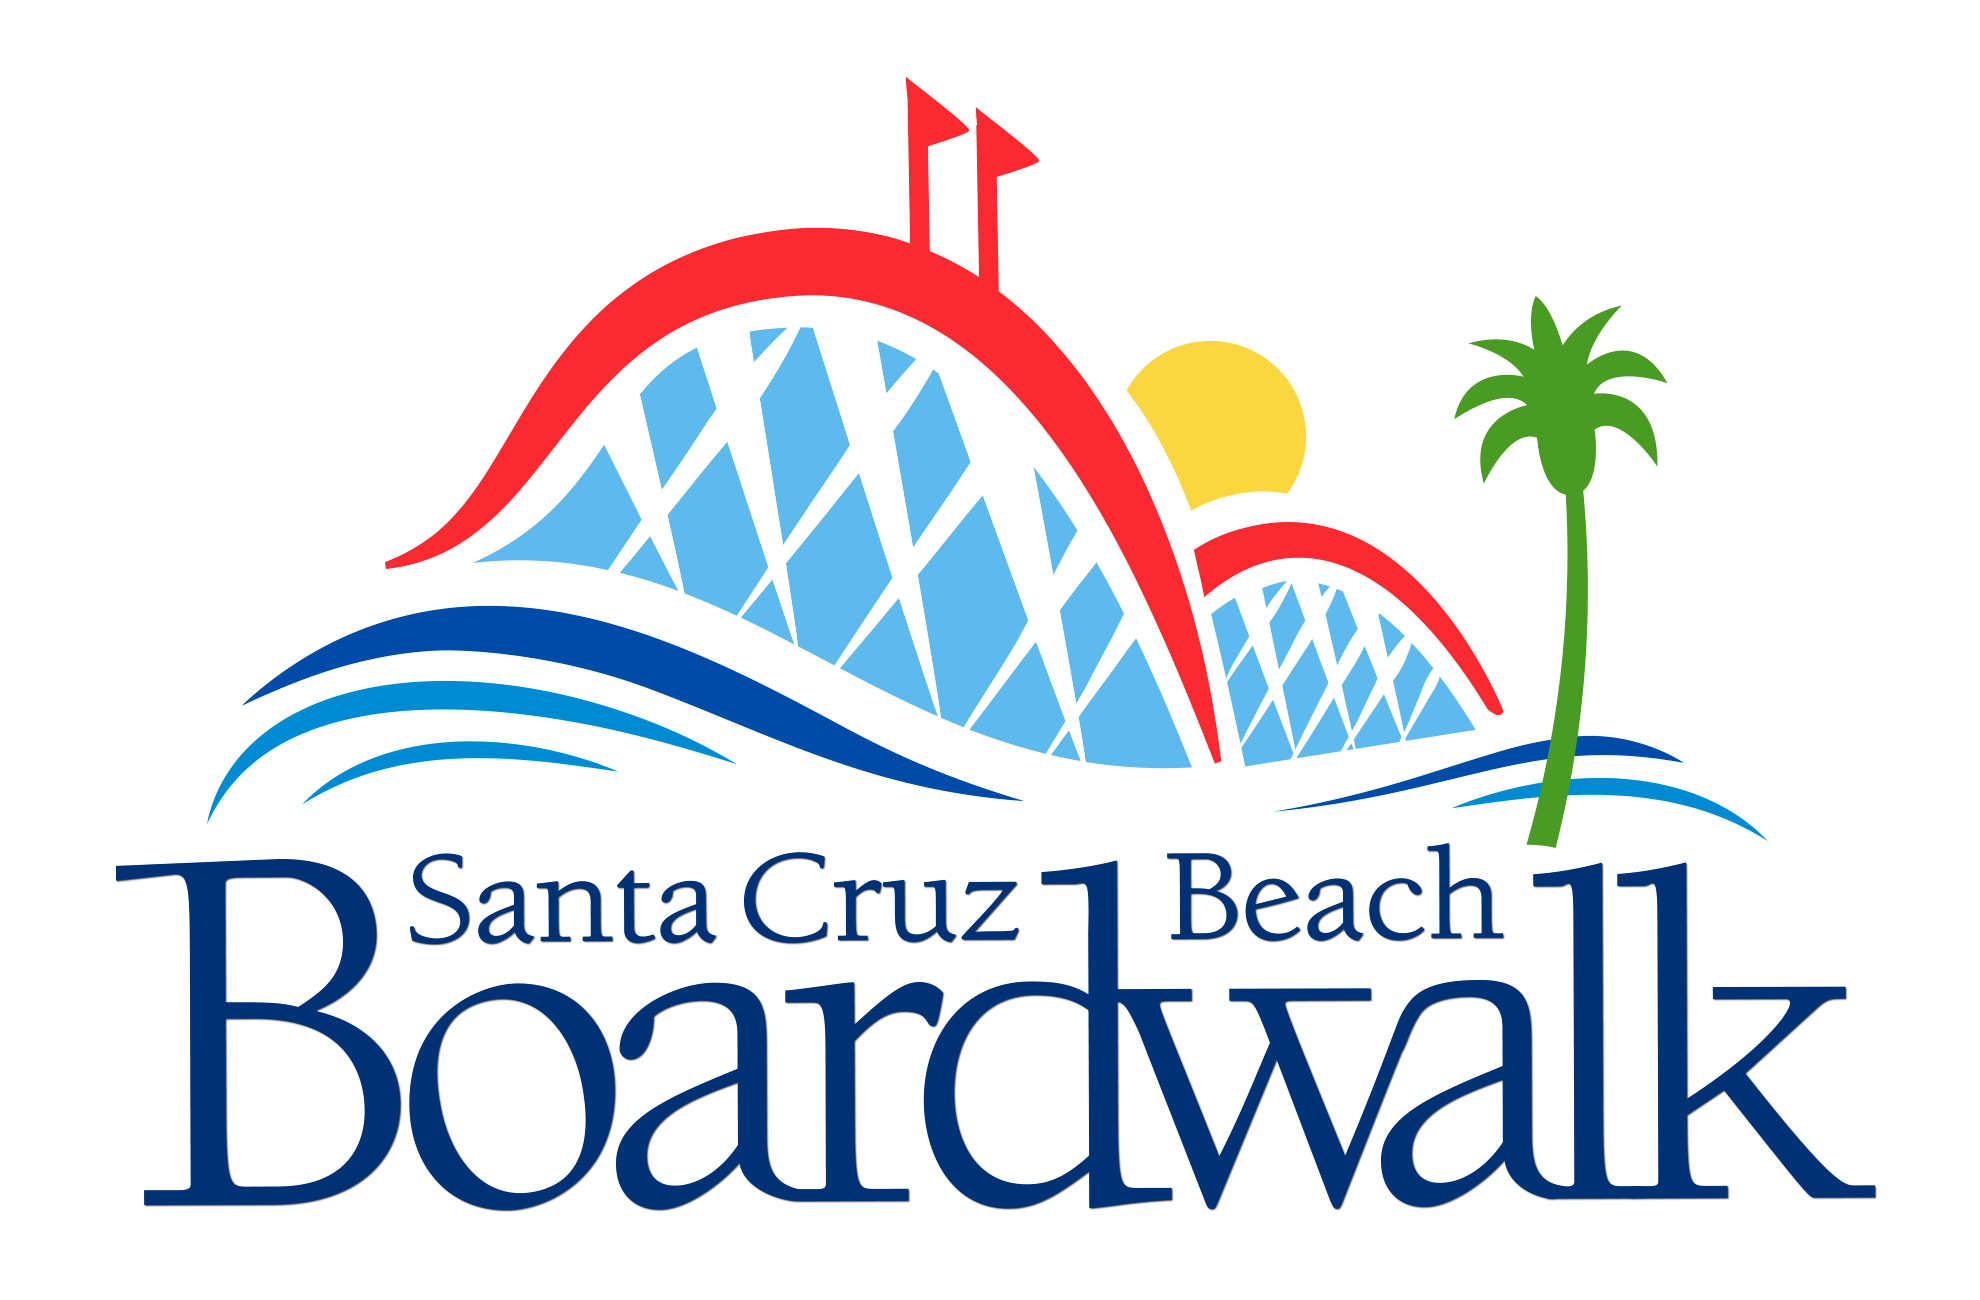 Santa Cruz Beach Boardwalk Wikipedia